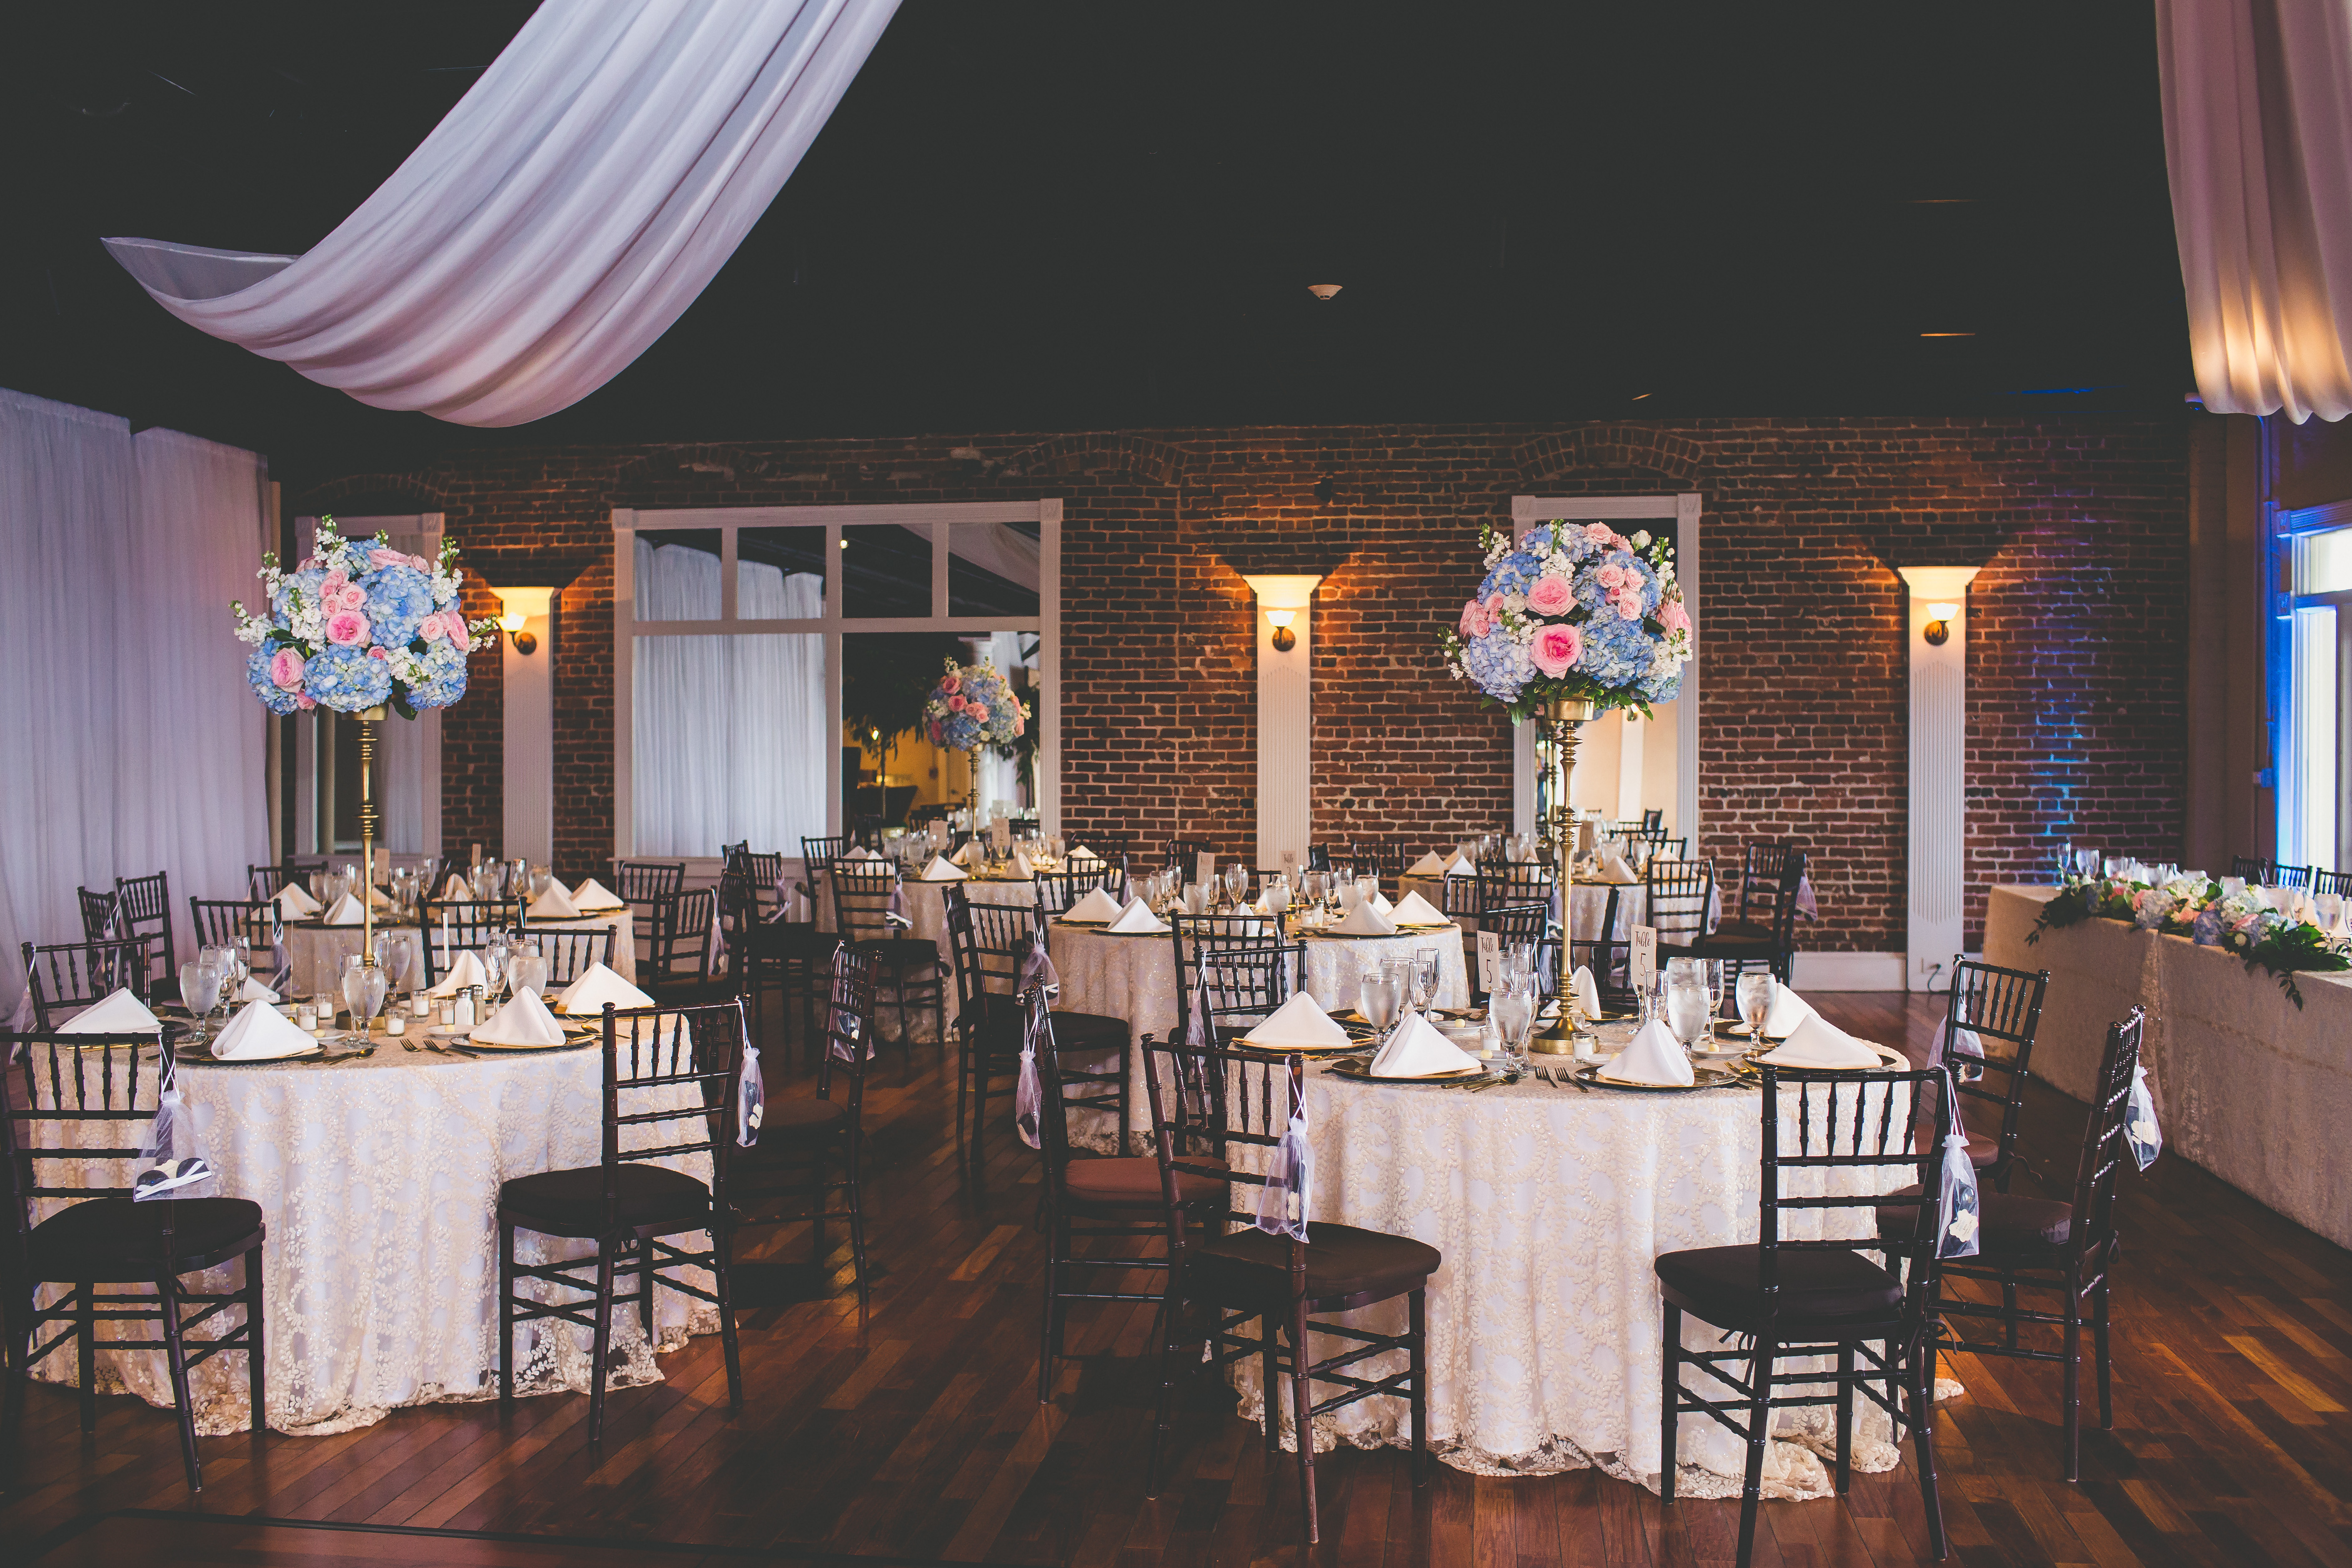 St Augustine Wedding at The White Rooms Villa Blanca Ceremony and Grand Ballroom Reception